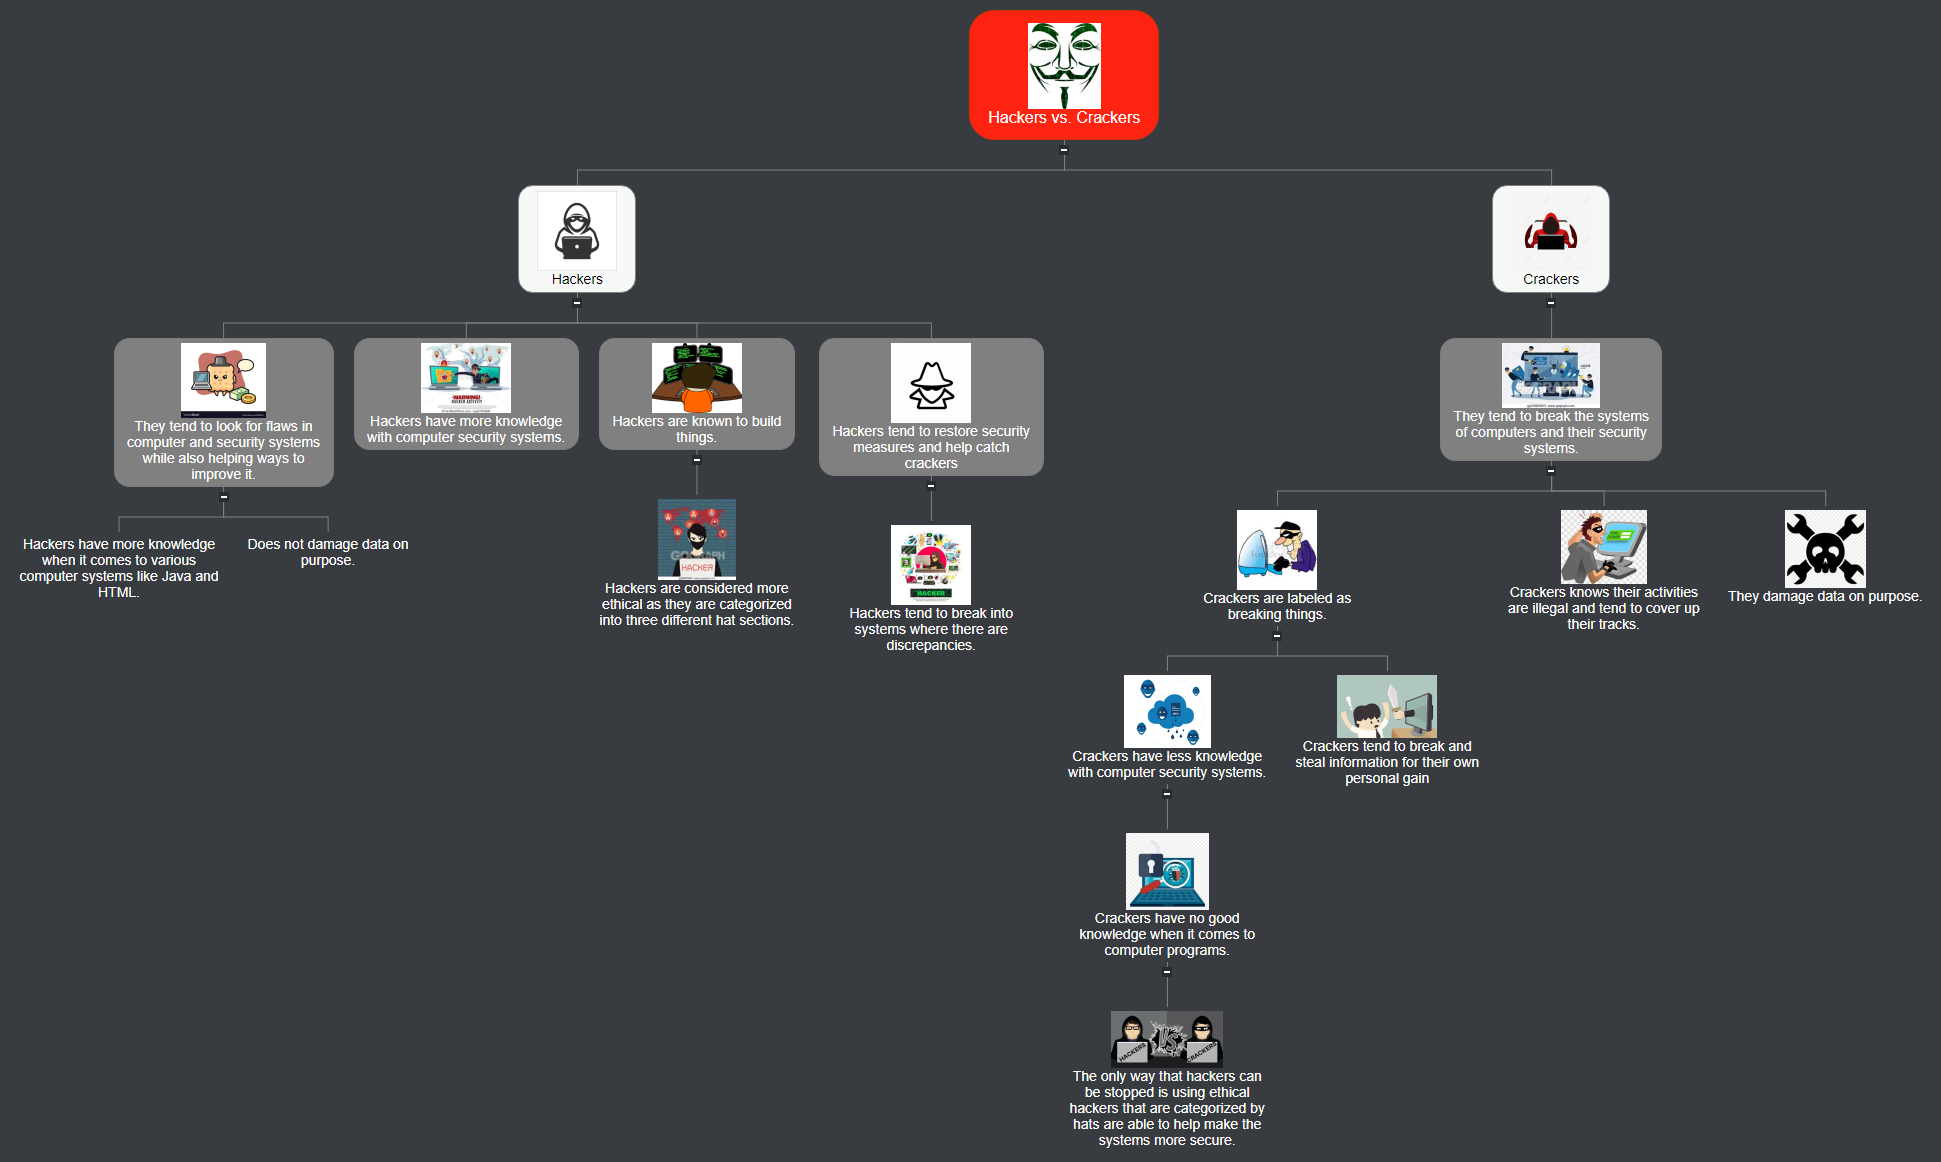 Hackers vs. Crackers Mind Map